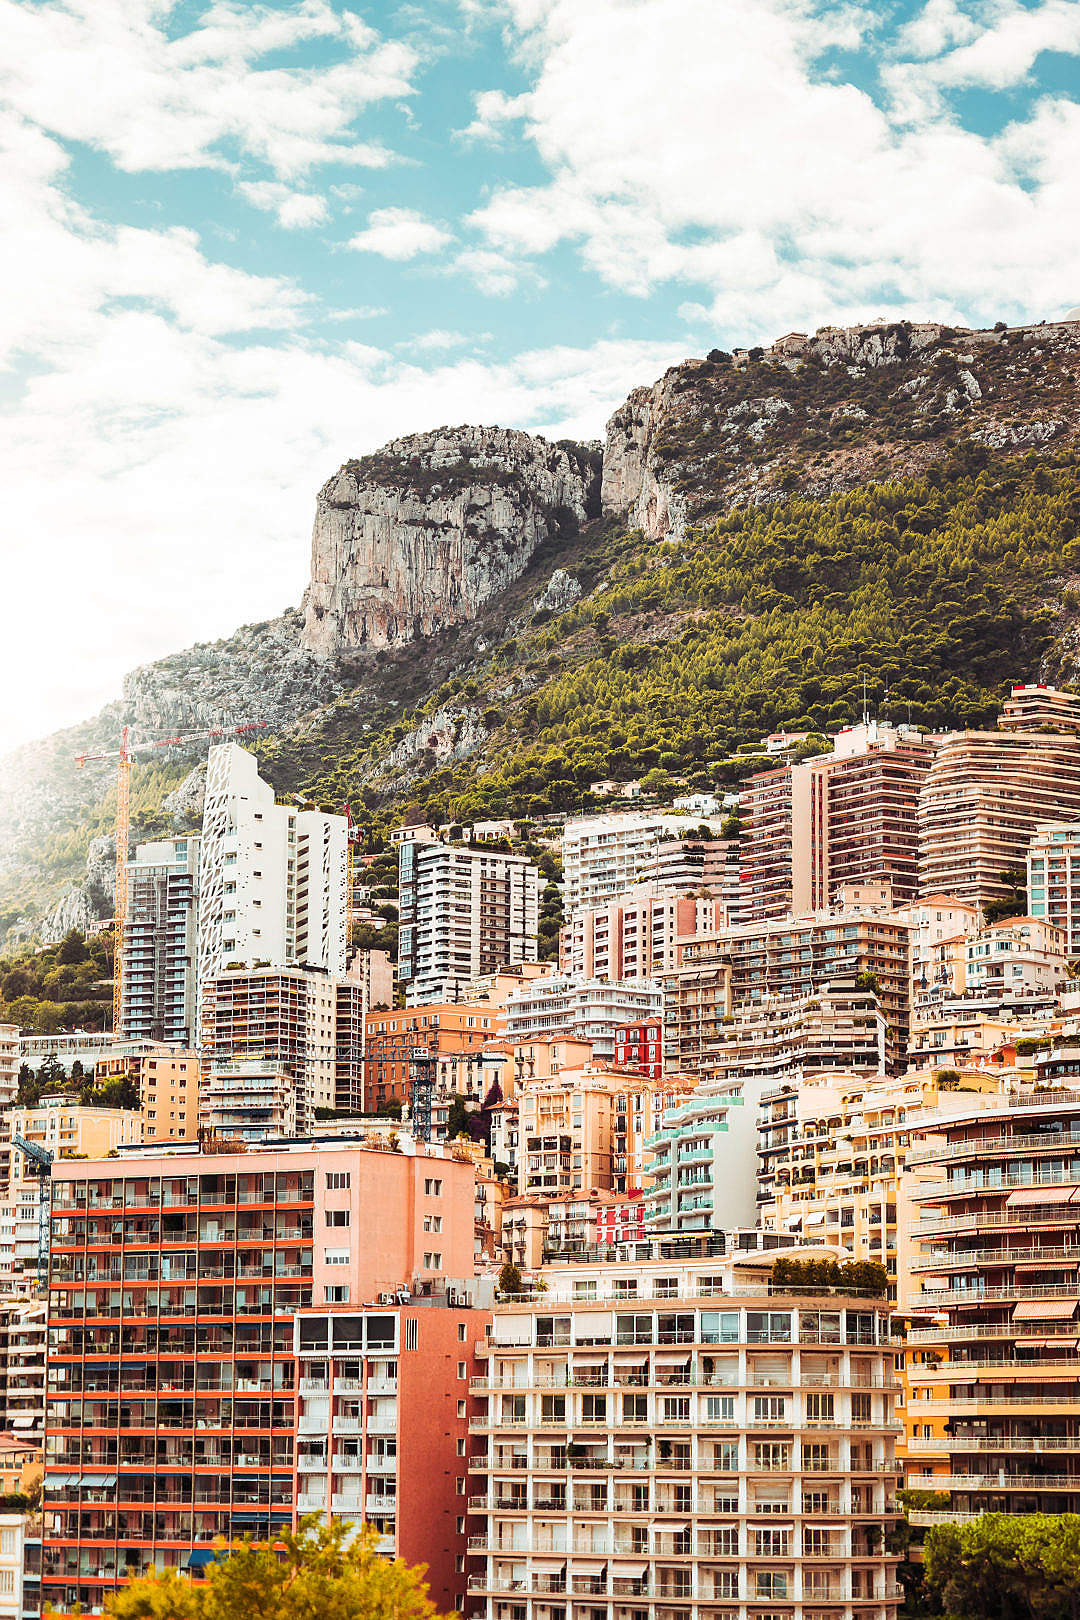 Download View at The Colourful Houses Located on The Hill in Monaco FREE Stock Photo